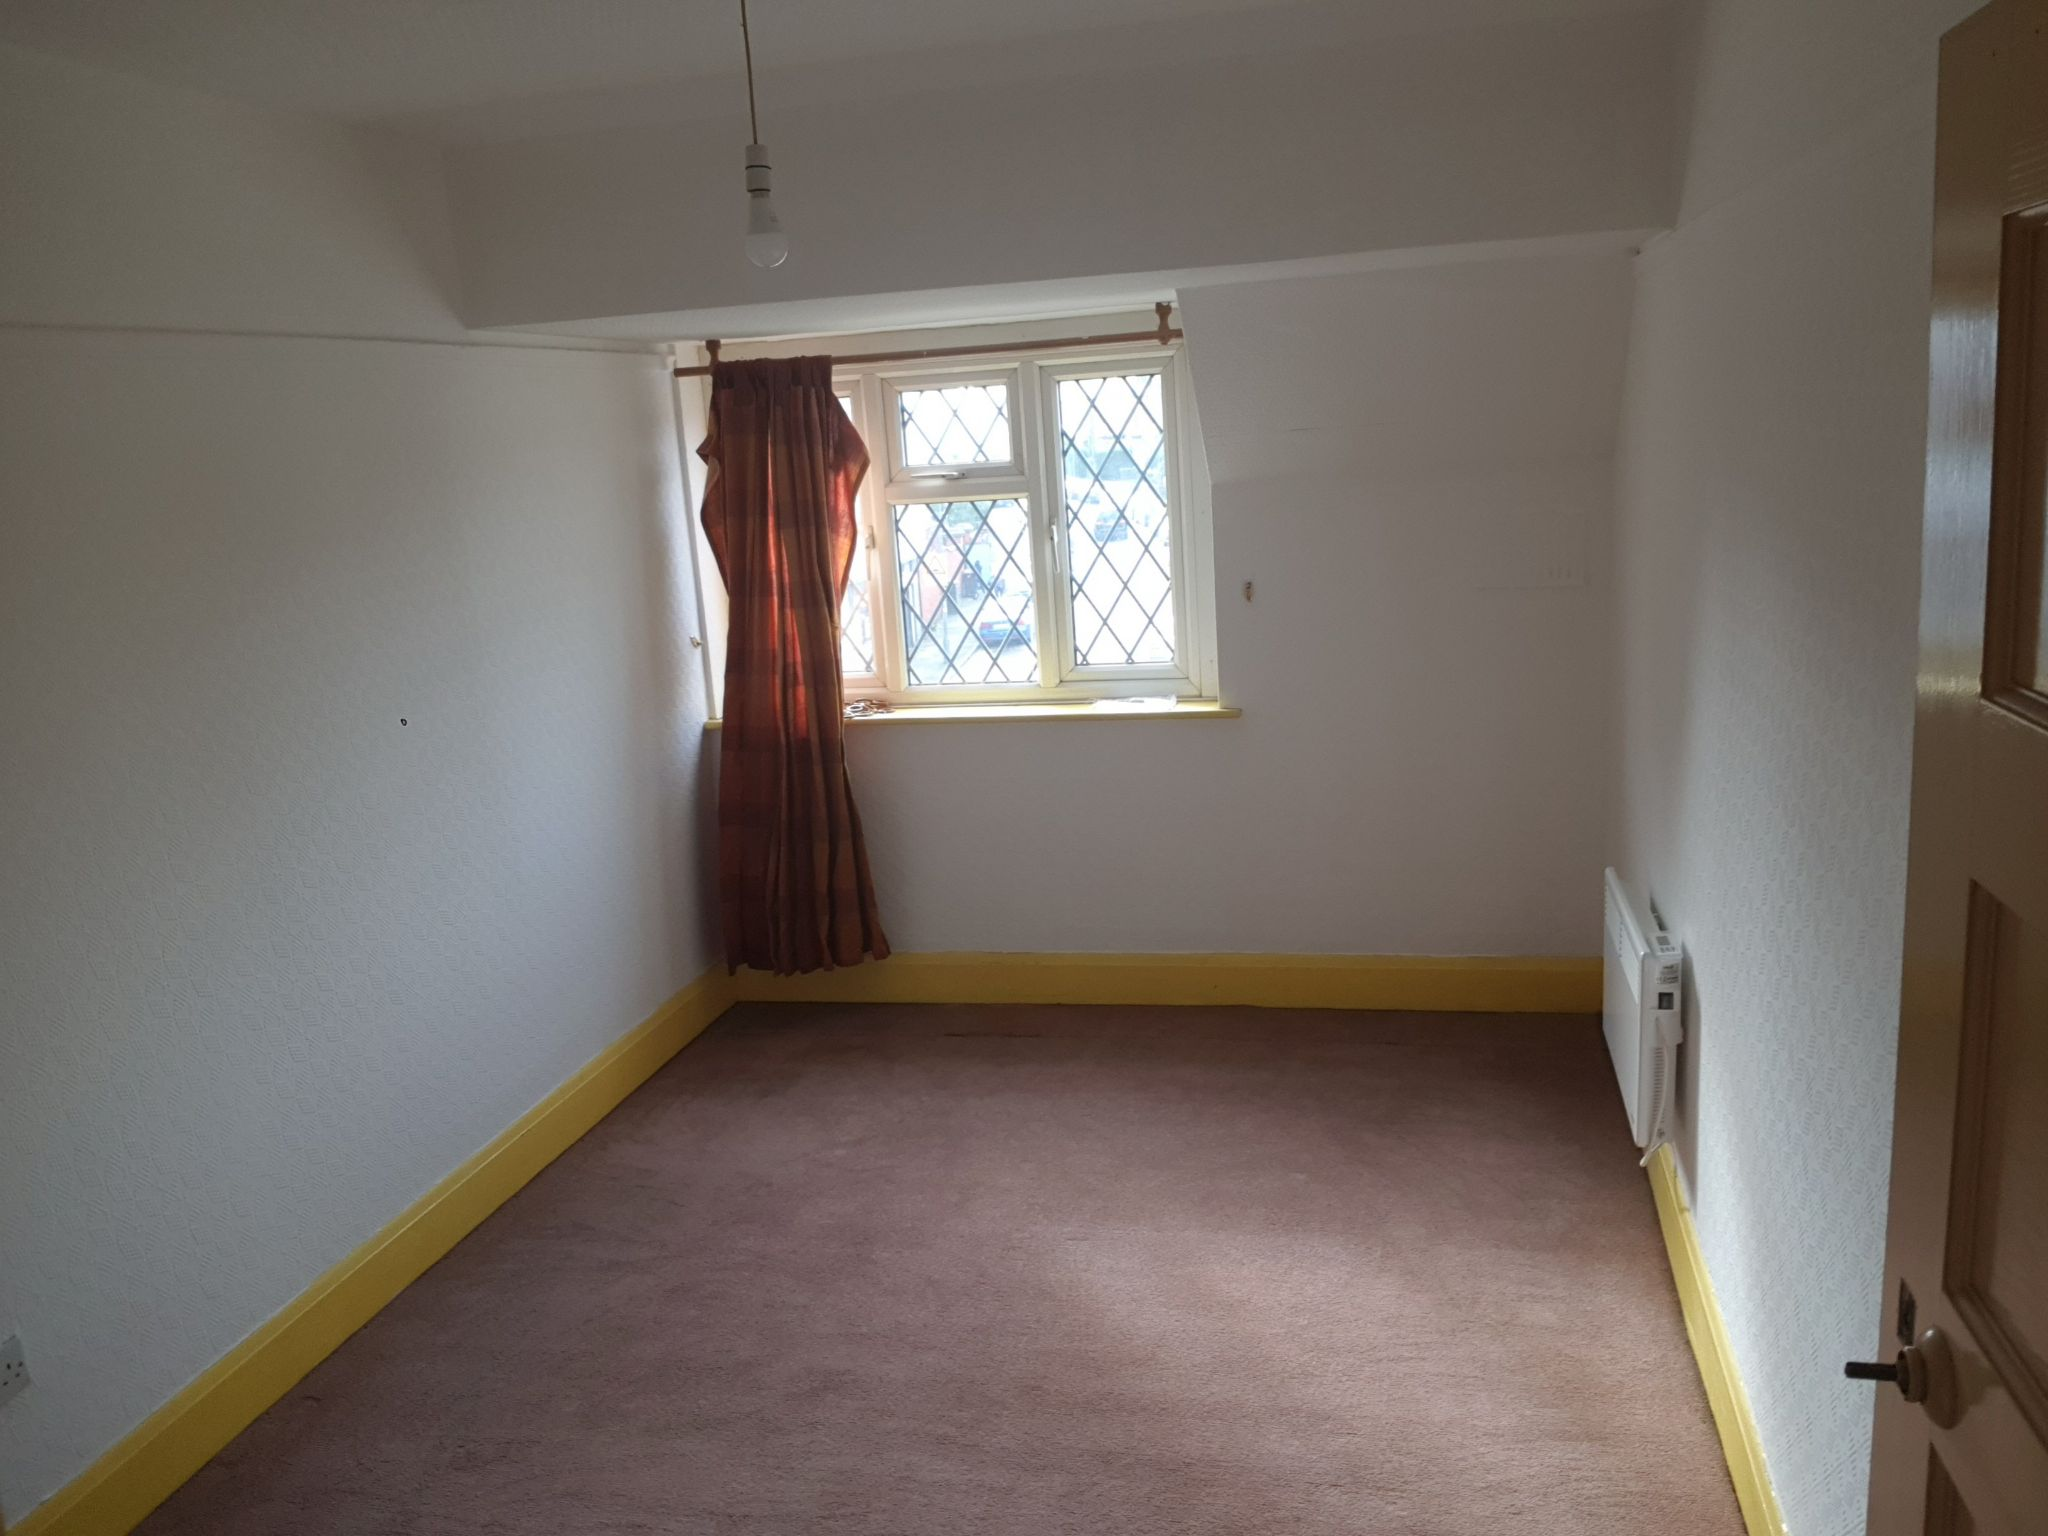 3 Bedroom Duplex Flat/apartment To Rent - Rear Large Bedroom